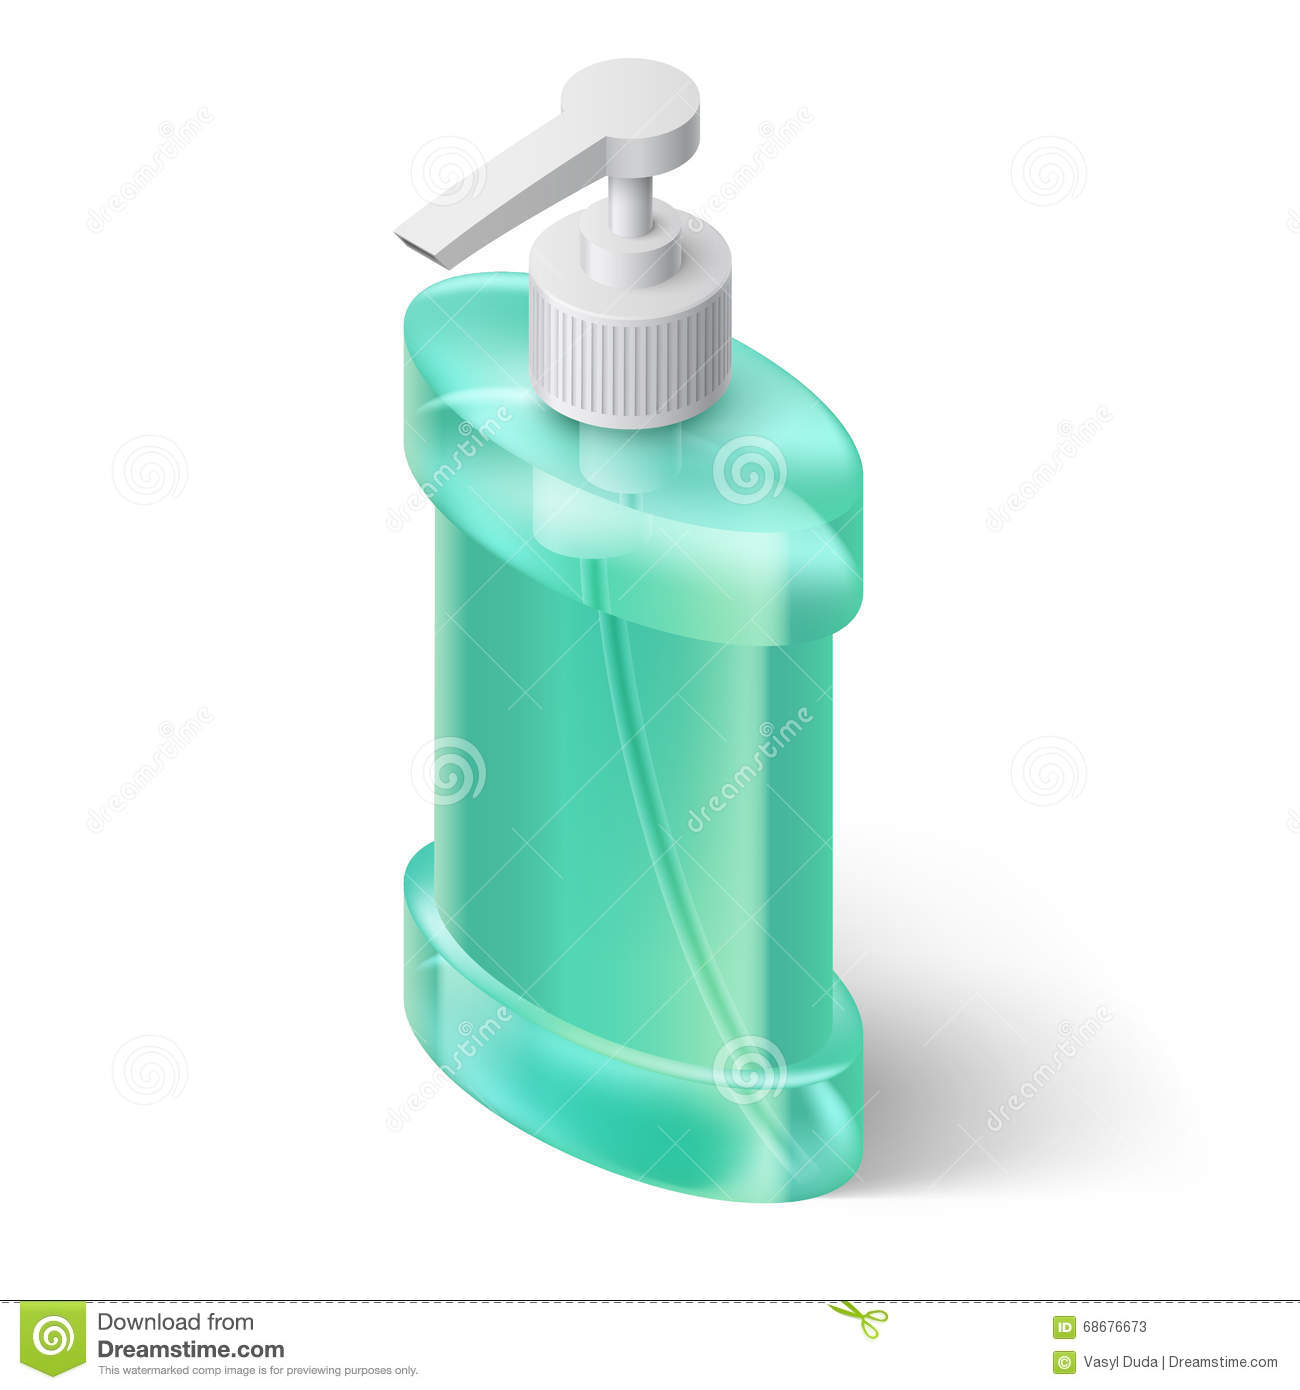 Stylish Soap Dispenser Liquid Soap Dispenser Stock Vector Image 68676673